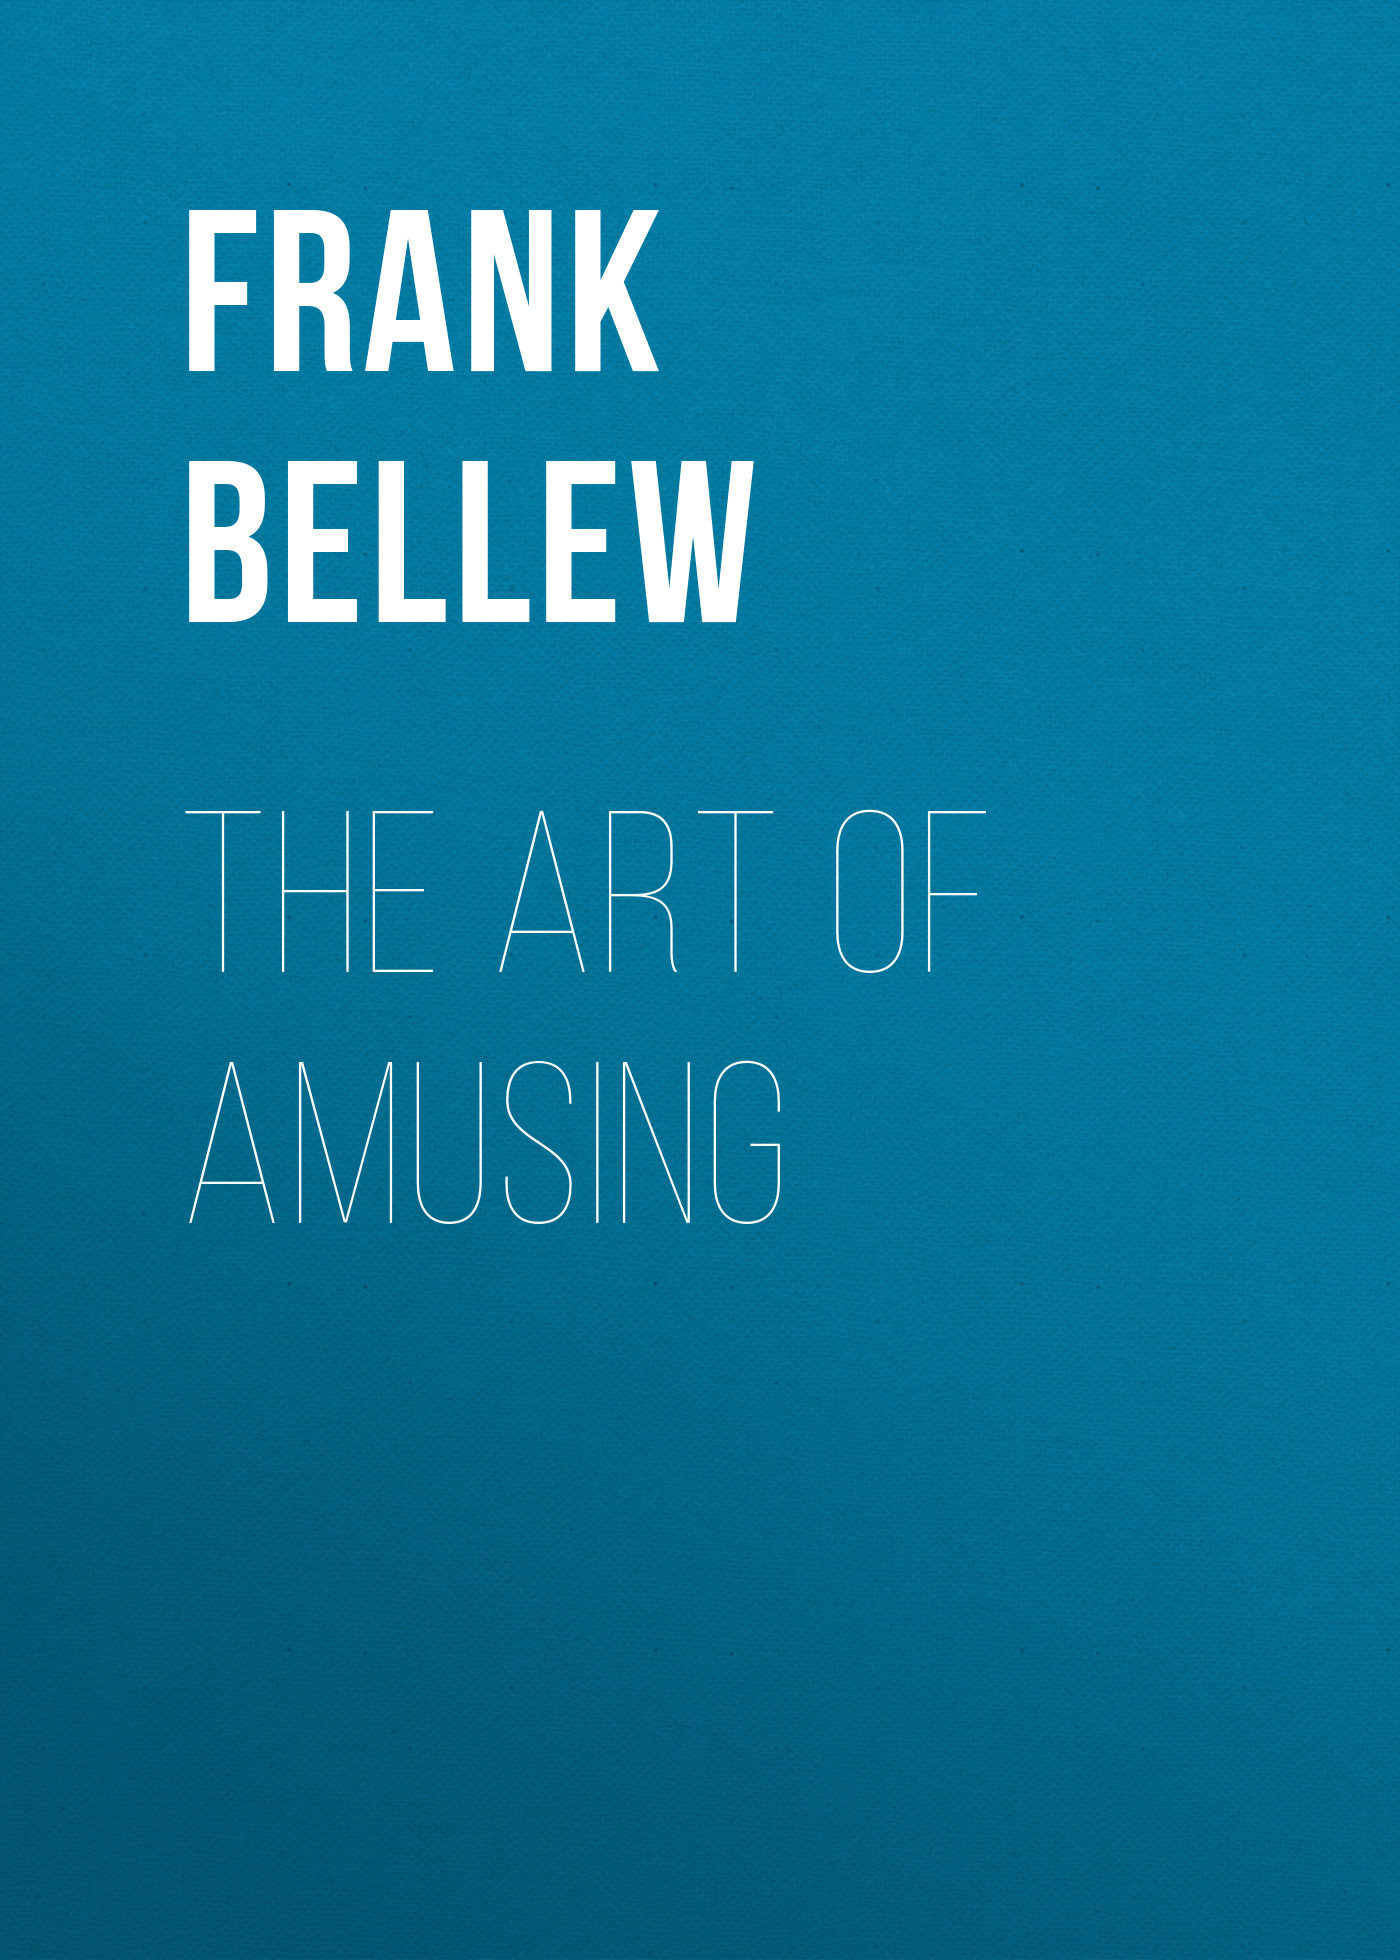 Frank Bellew The Art of Amusing frank bellew the art of amusing